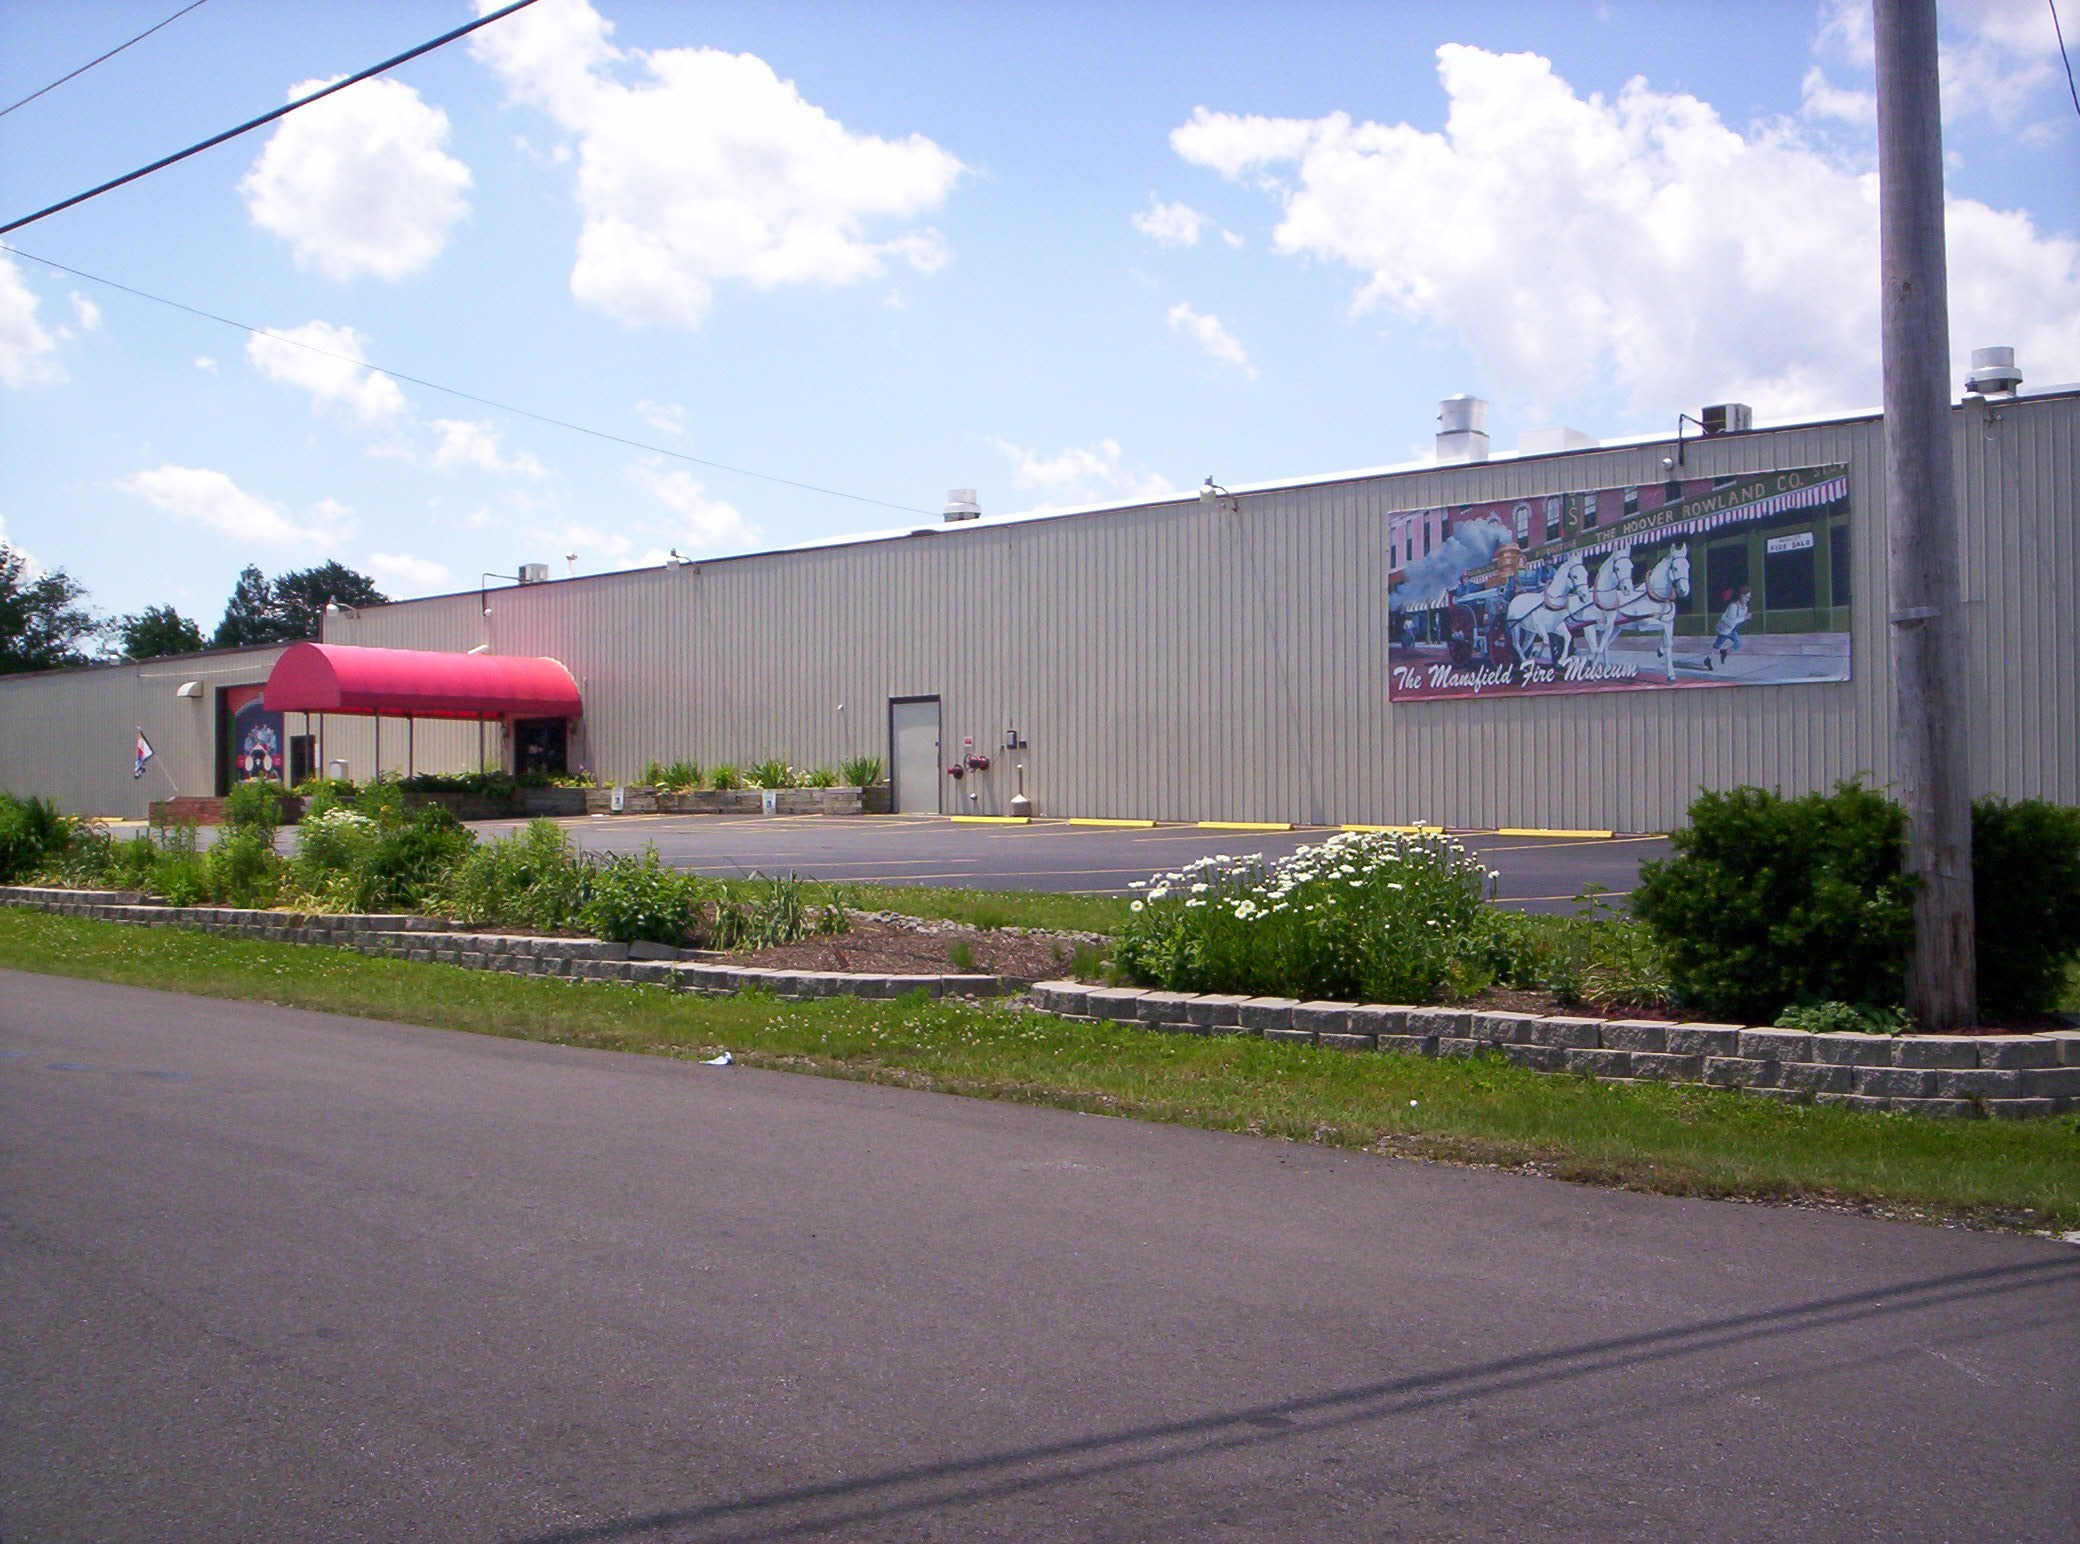 The Mansfield Fire Museum